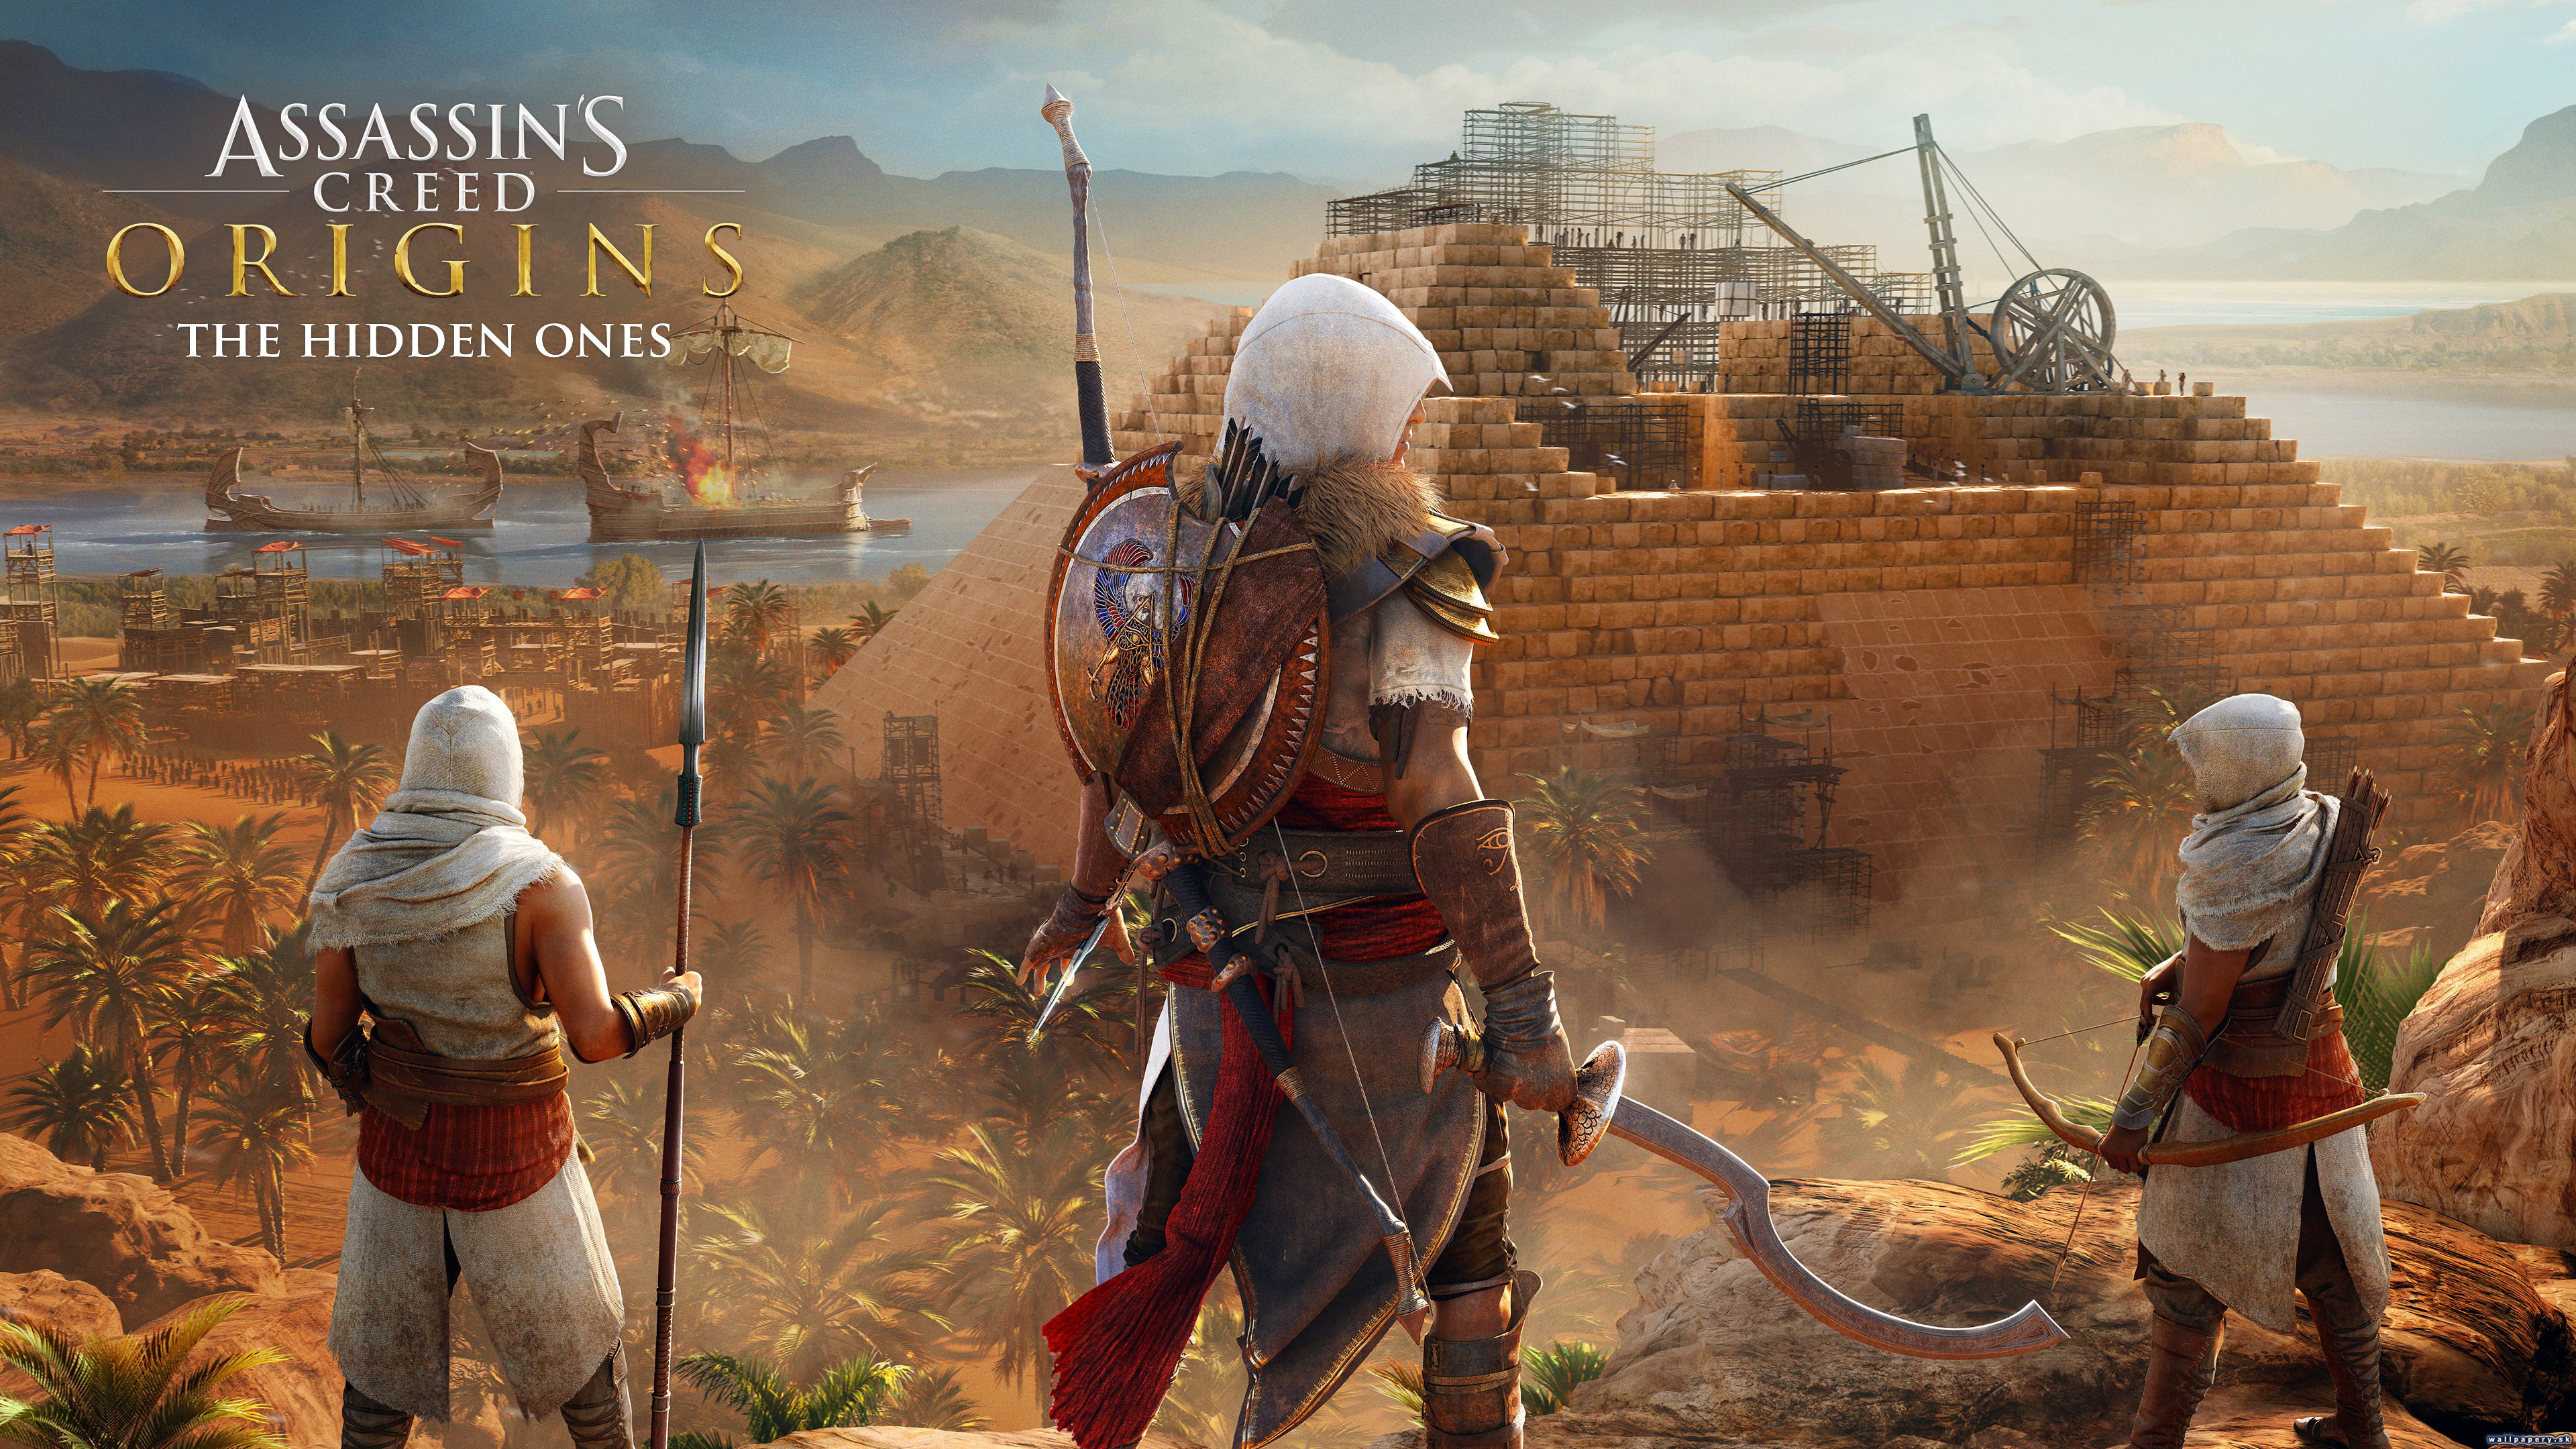 Assassin's Creed: Origins - The Hidden Ones - wallpaper 1